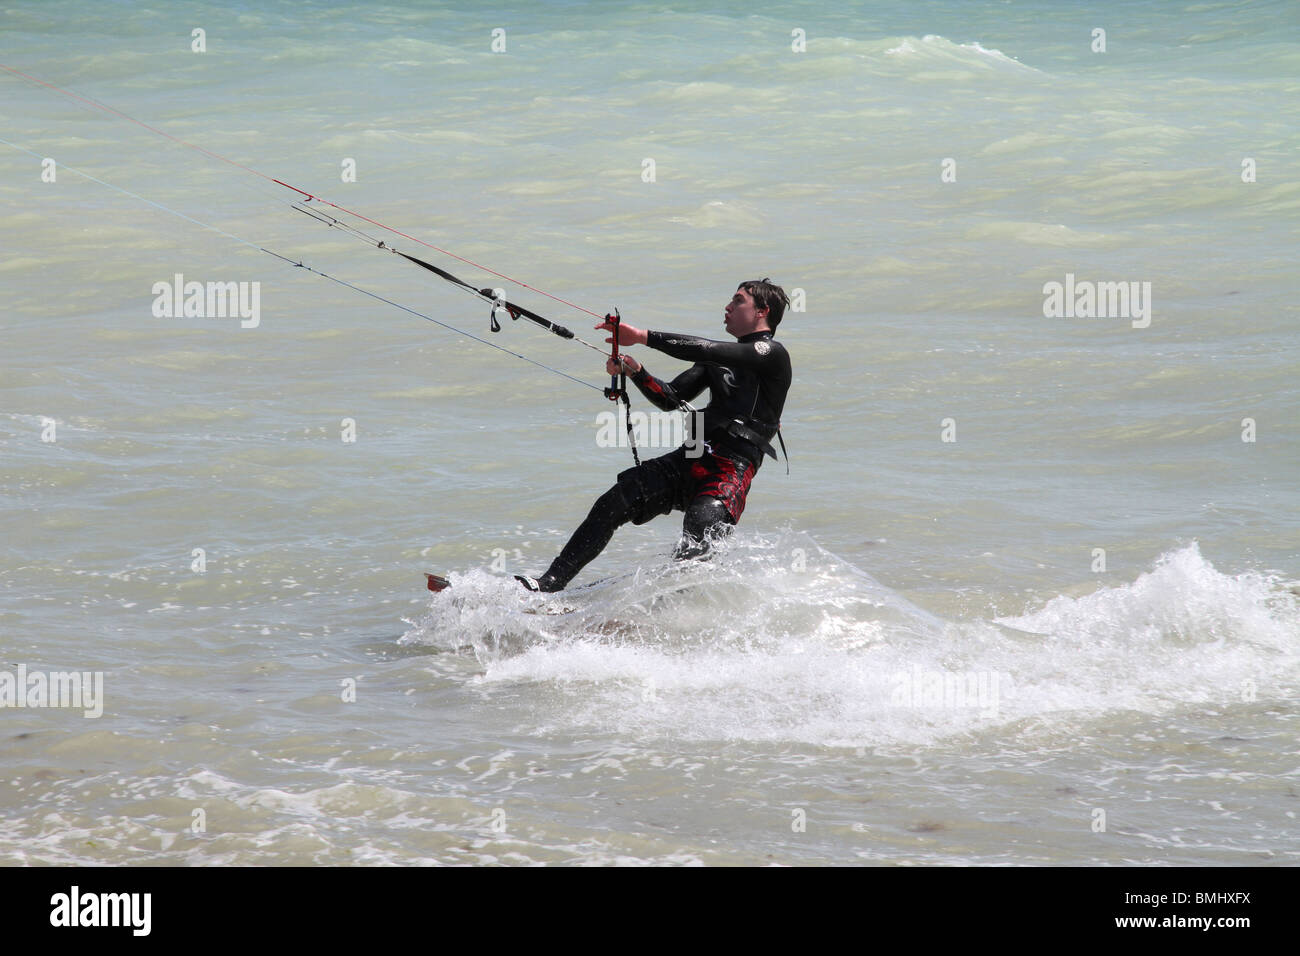 Para surfer in the sea at Worthing grunting with effort. - Stock Image